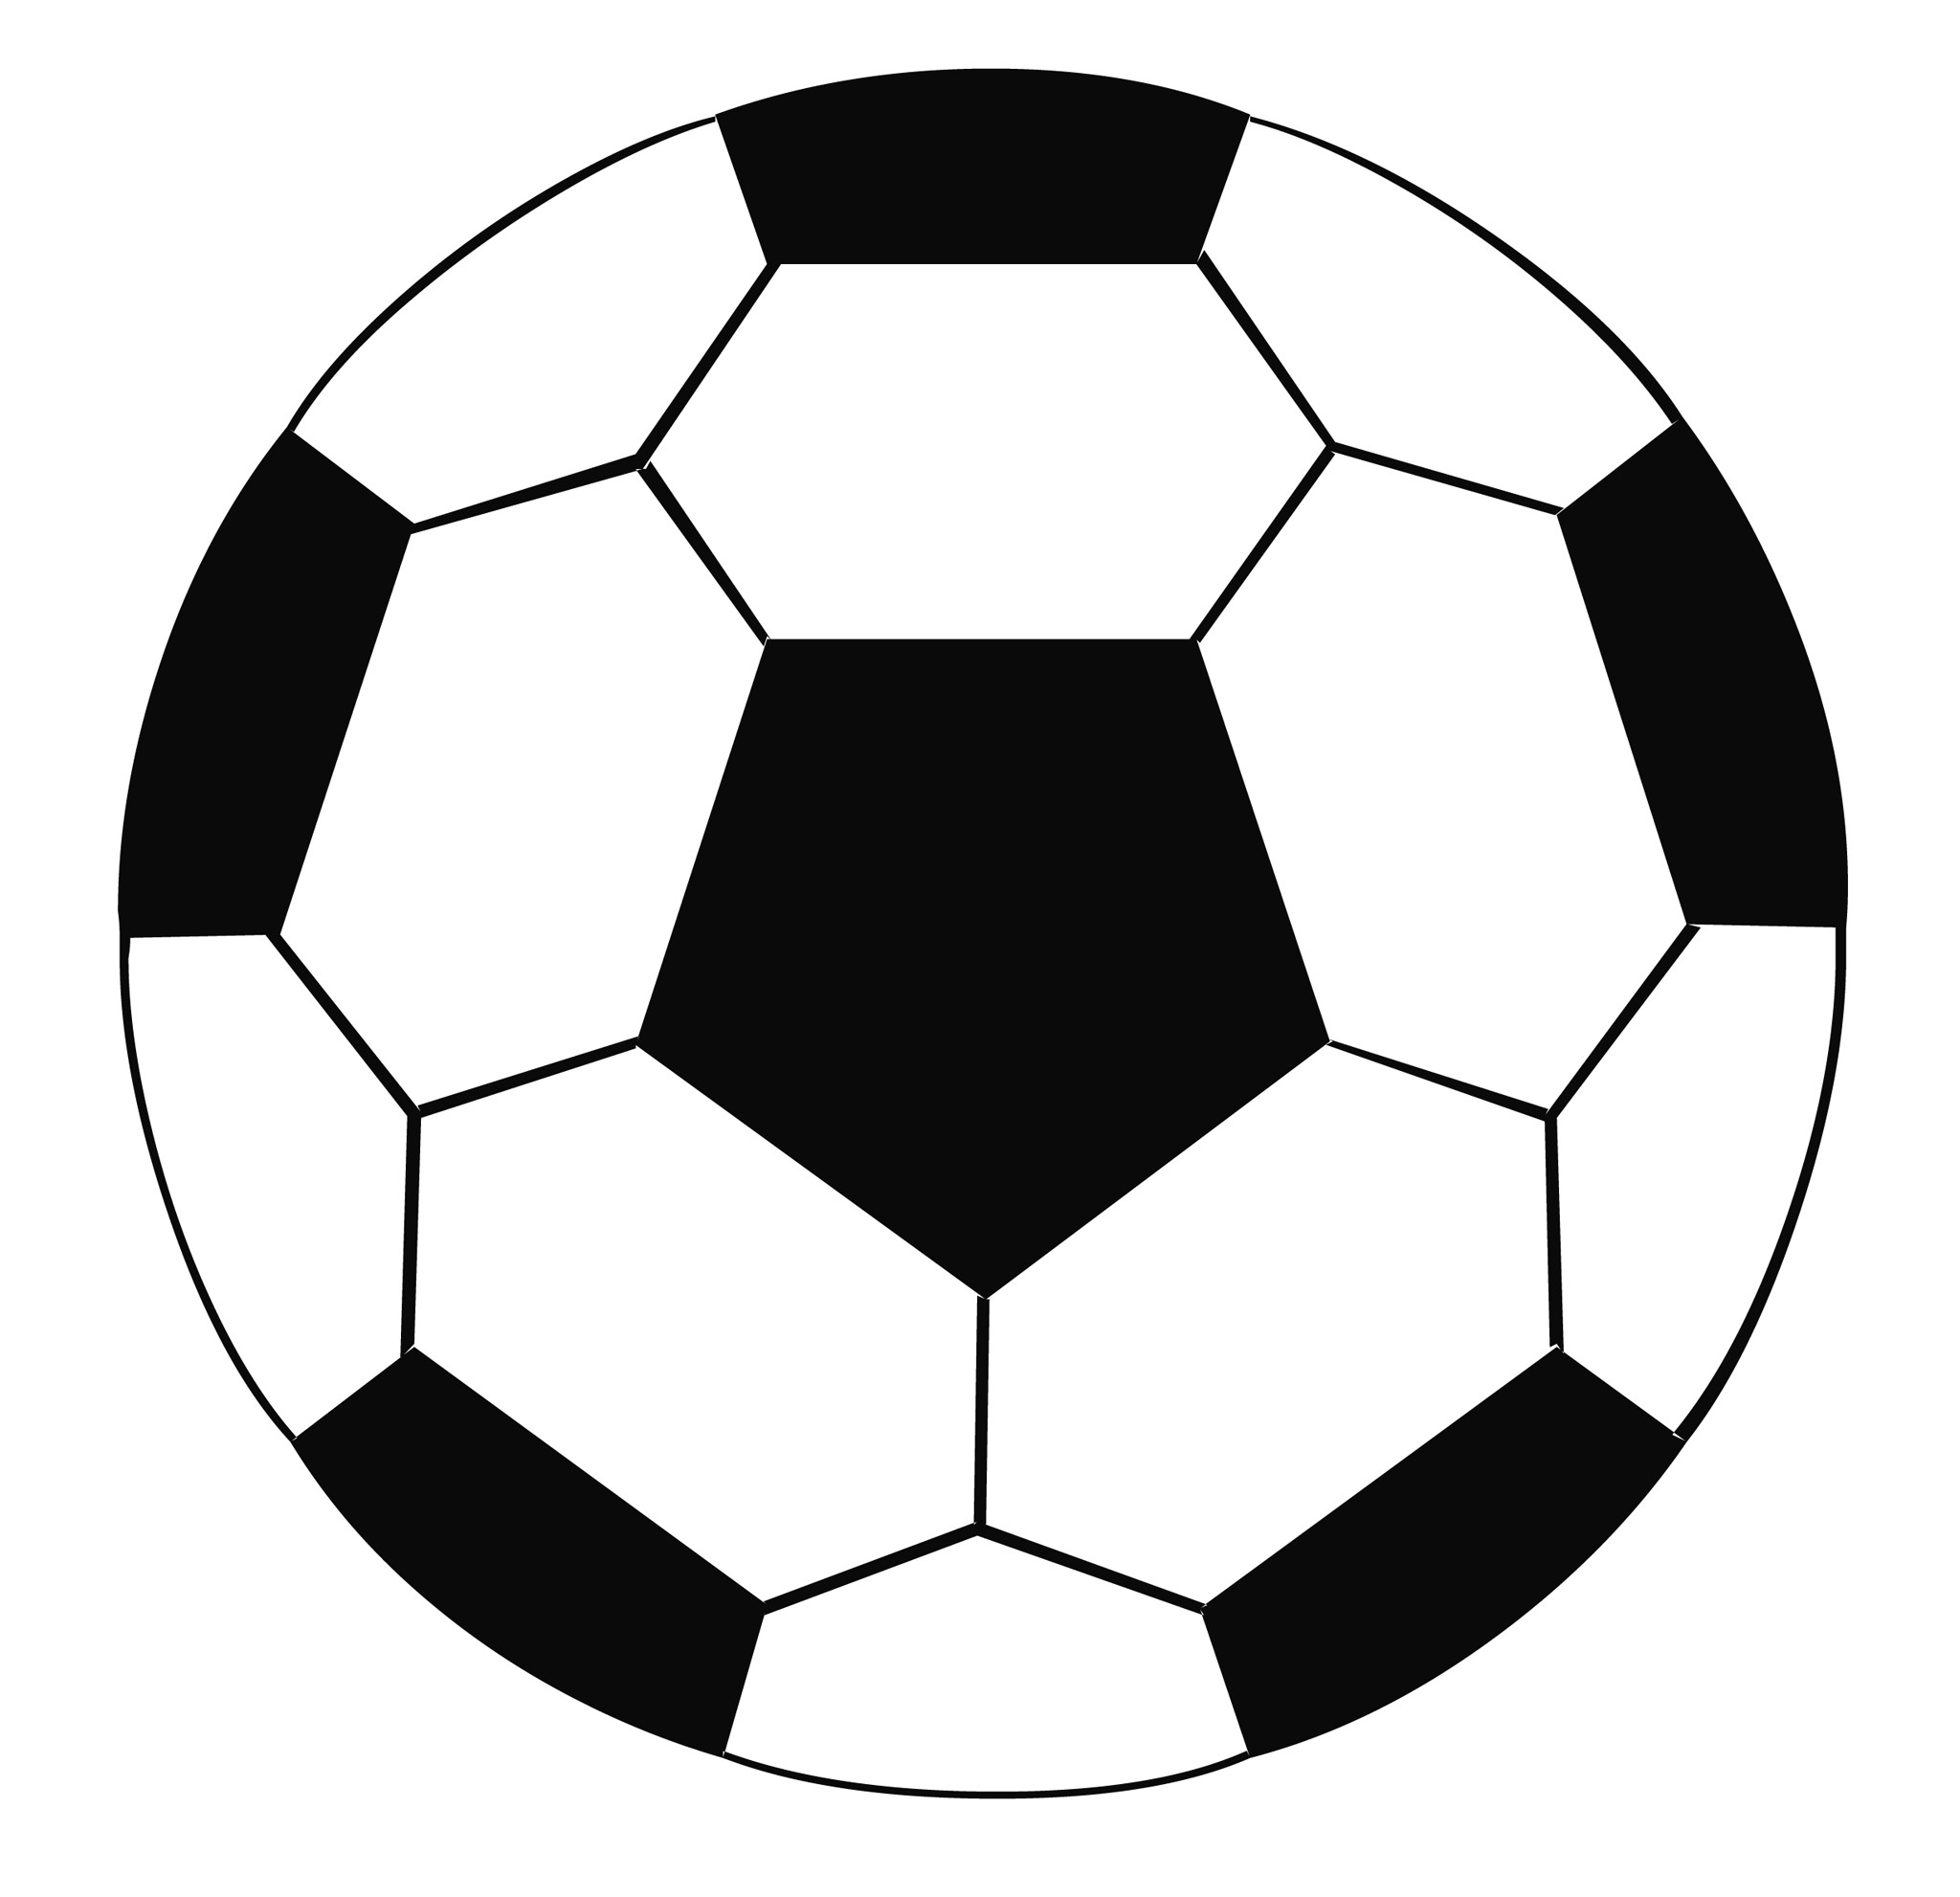 2048x1982 Soccer ball and clip art on